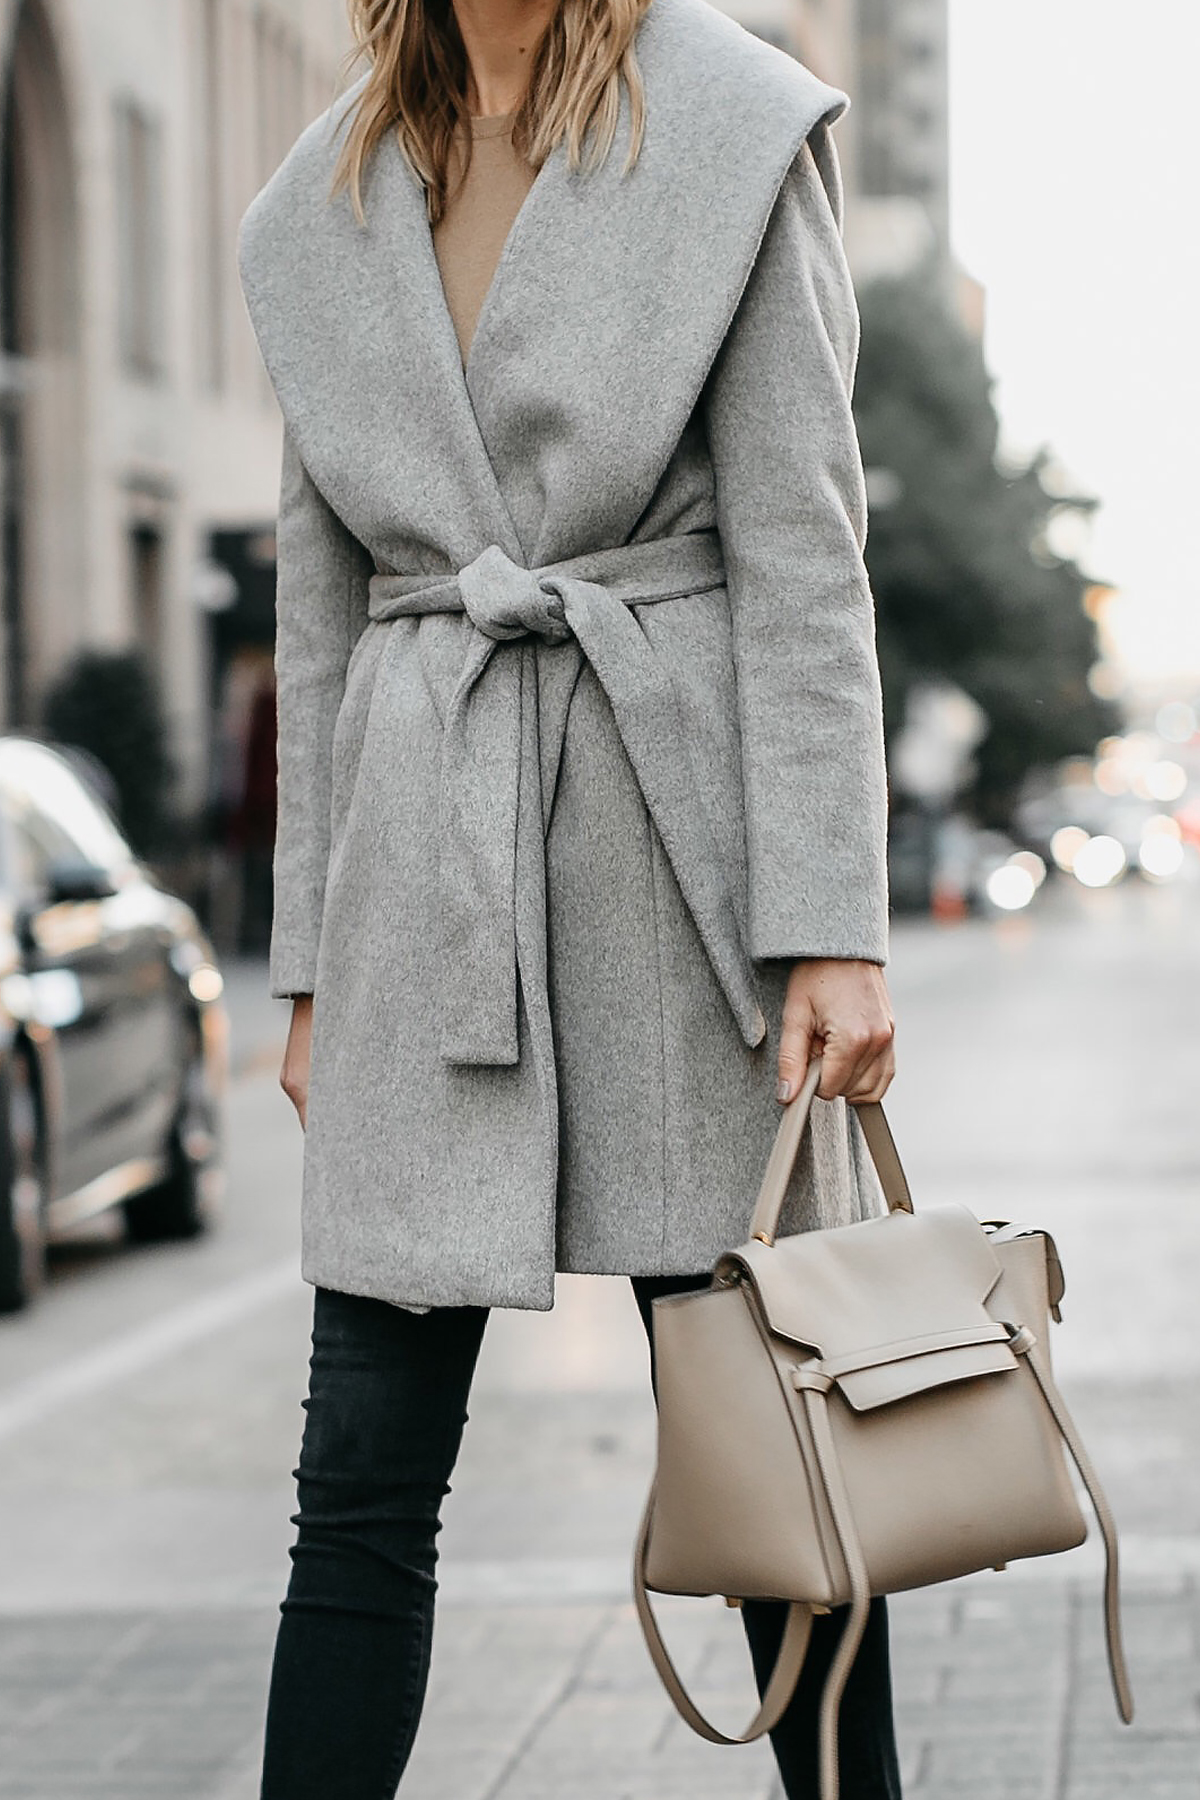 Ann Taylor Grey Wrap Coat Celine Mini Belt Bag Fashion Jackson Dallas Blogger Fashion Blogger Street Style